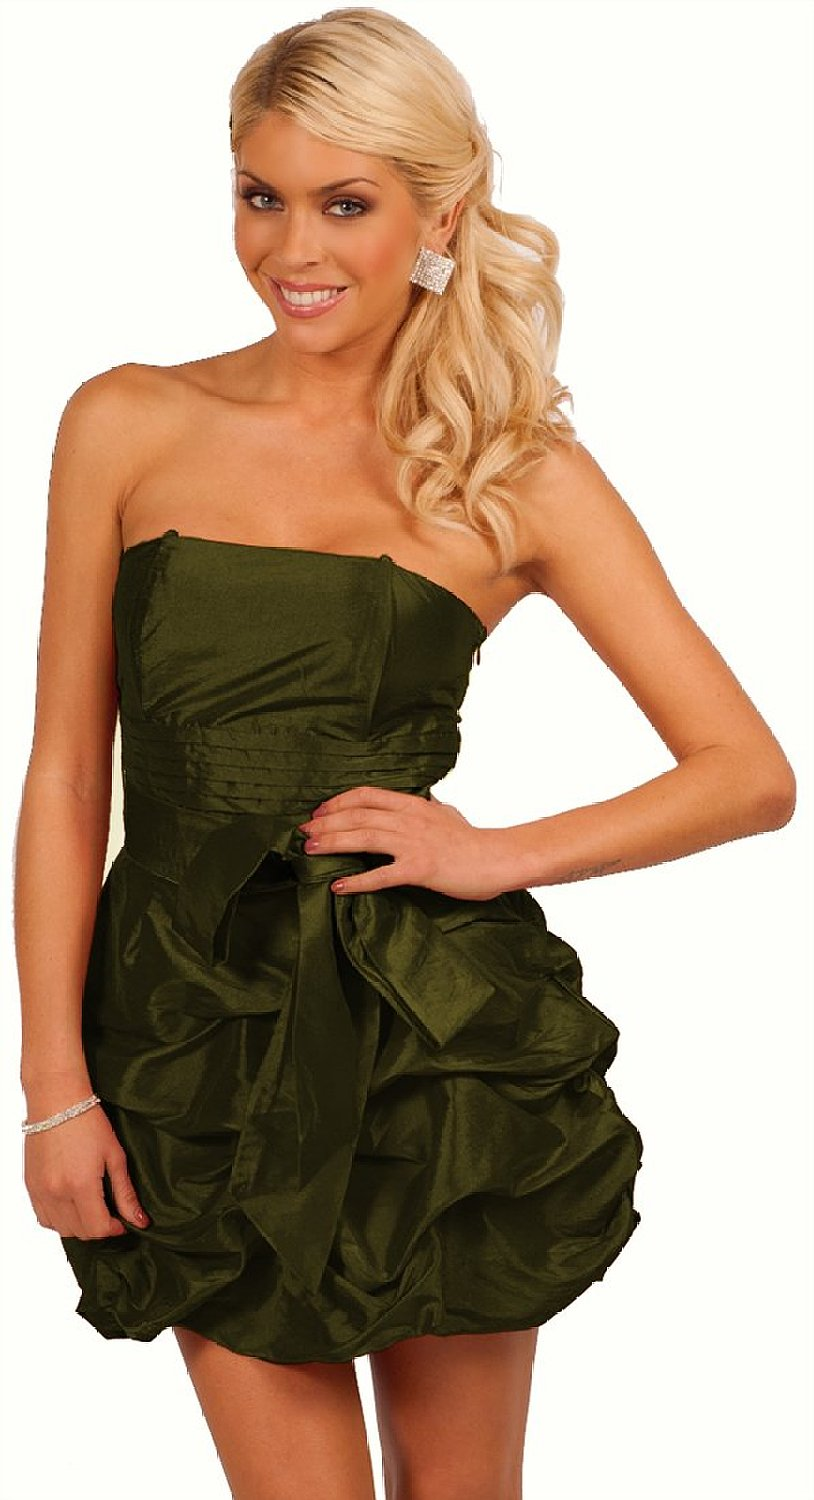 Amazon.com: strapless pleated bow decor pick up style bubble skirt evening party mini dress: clothing